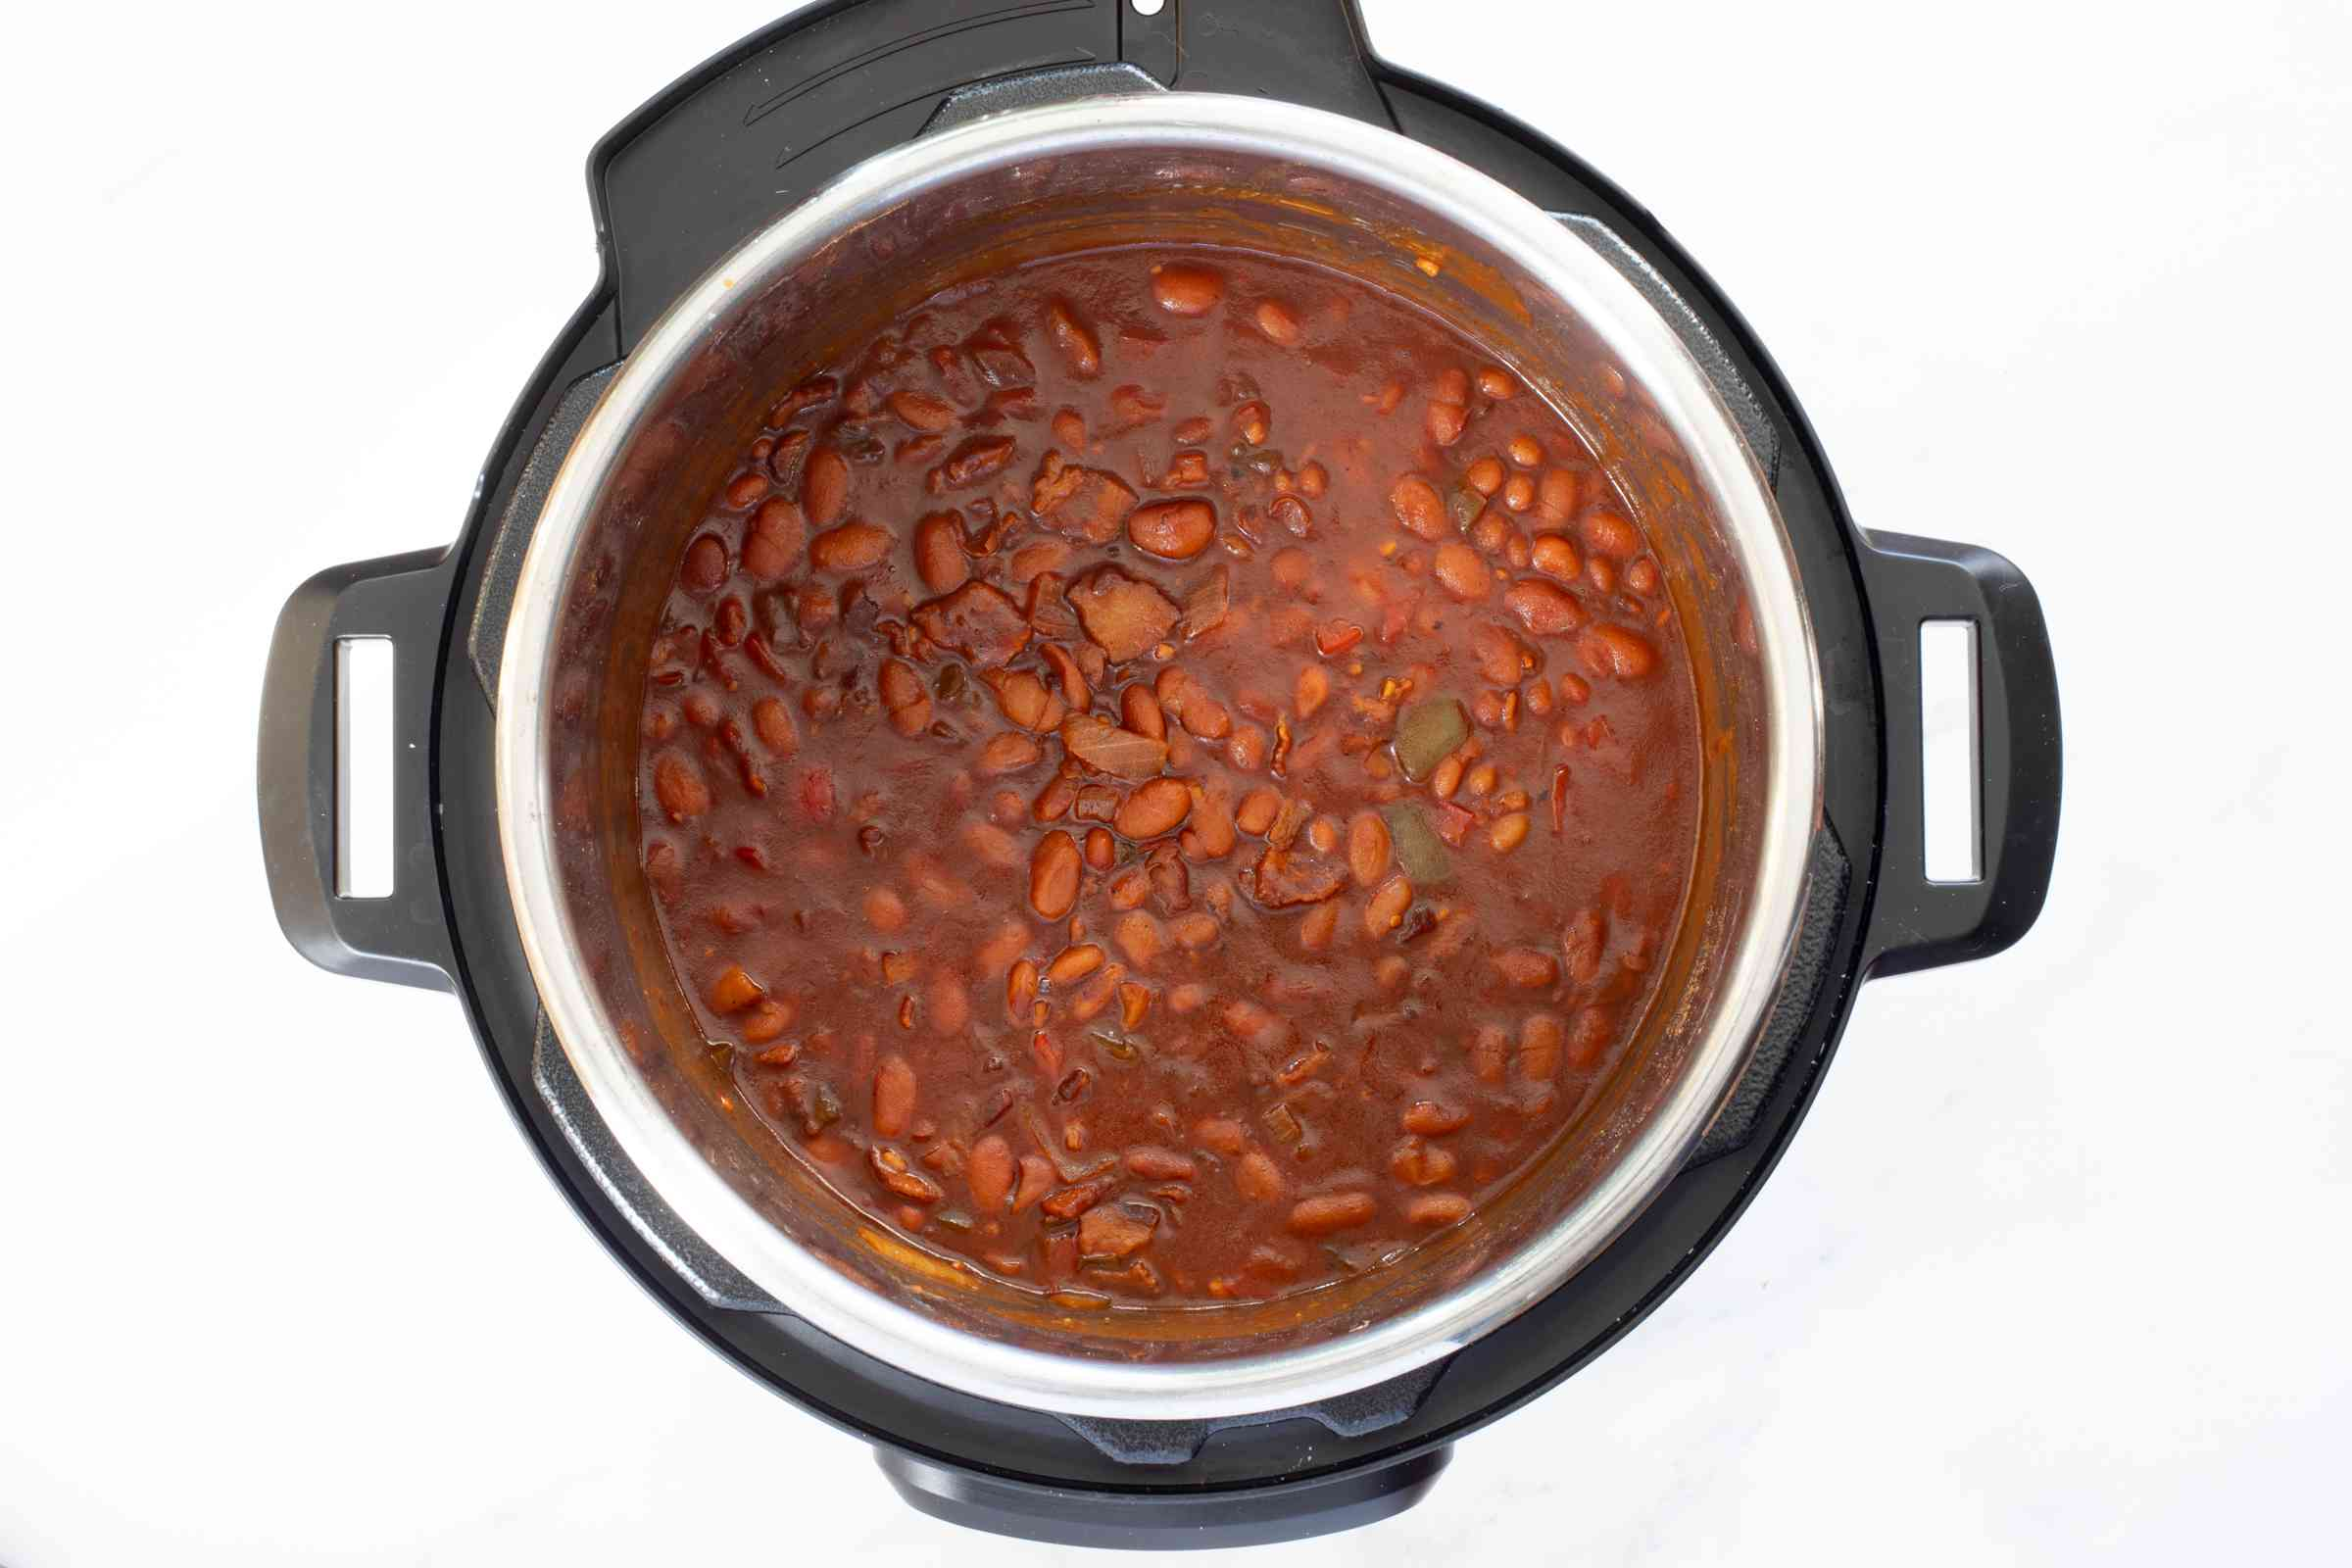 the cooked beans in the instant pot